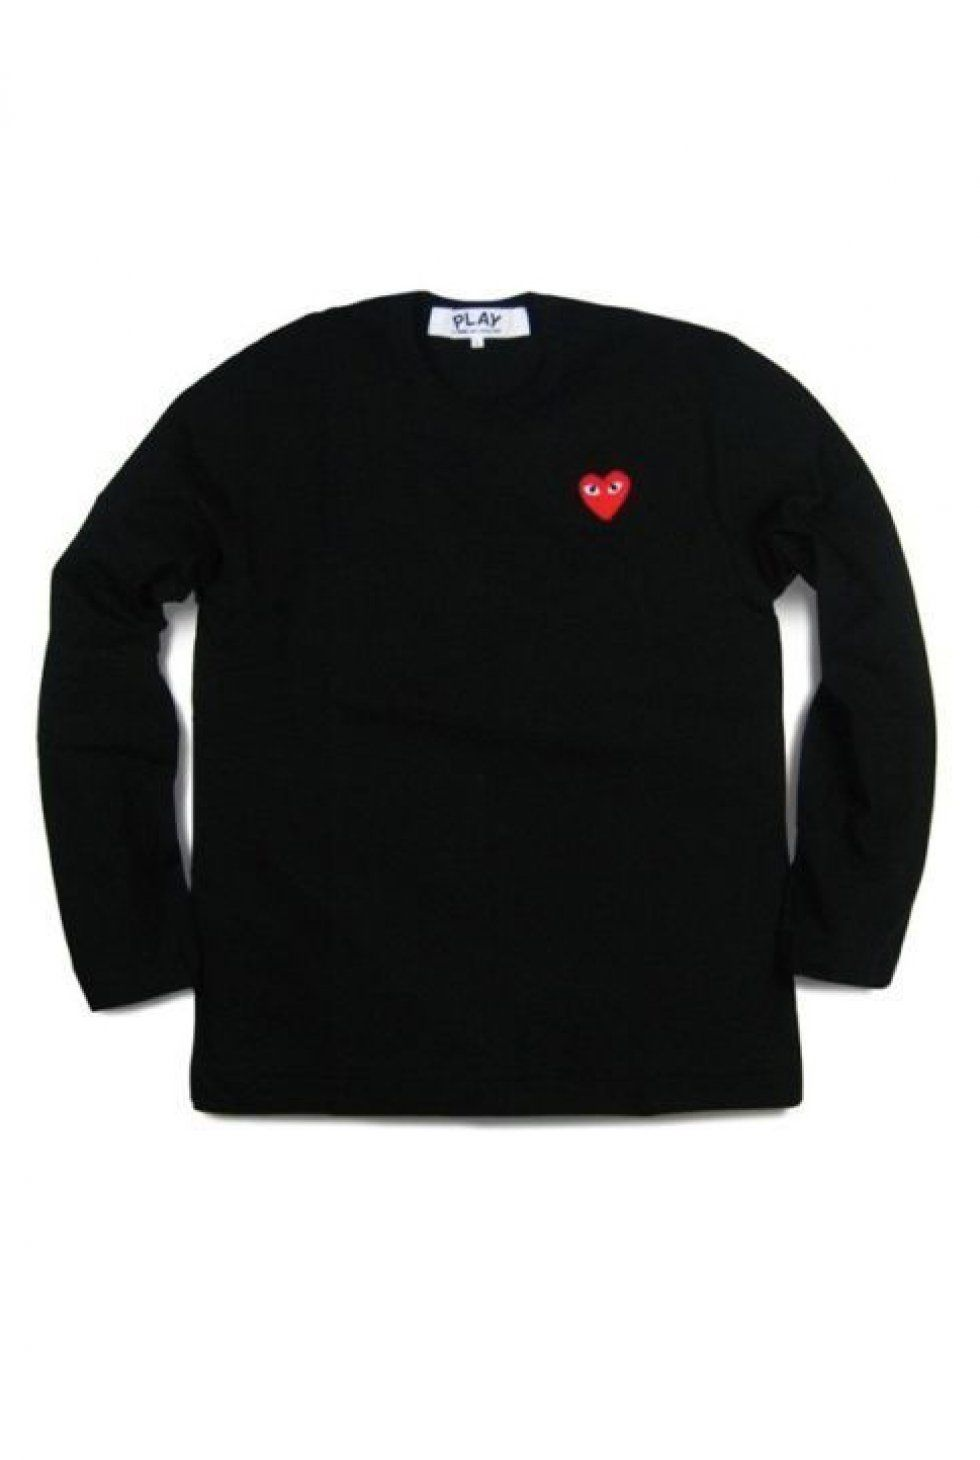 a030bc6c65d5ce Wood Wood - Comme Des Garcons - CDG Play - Ladies L S shirt - Red heart